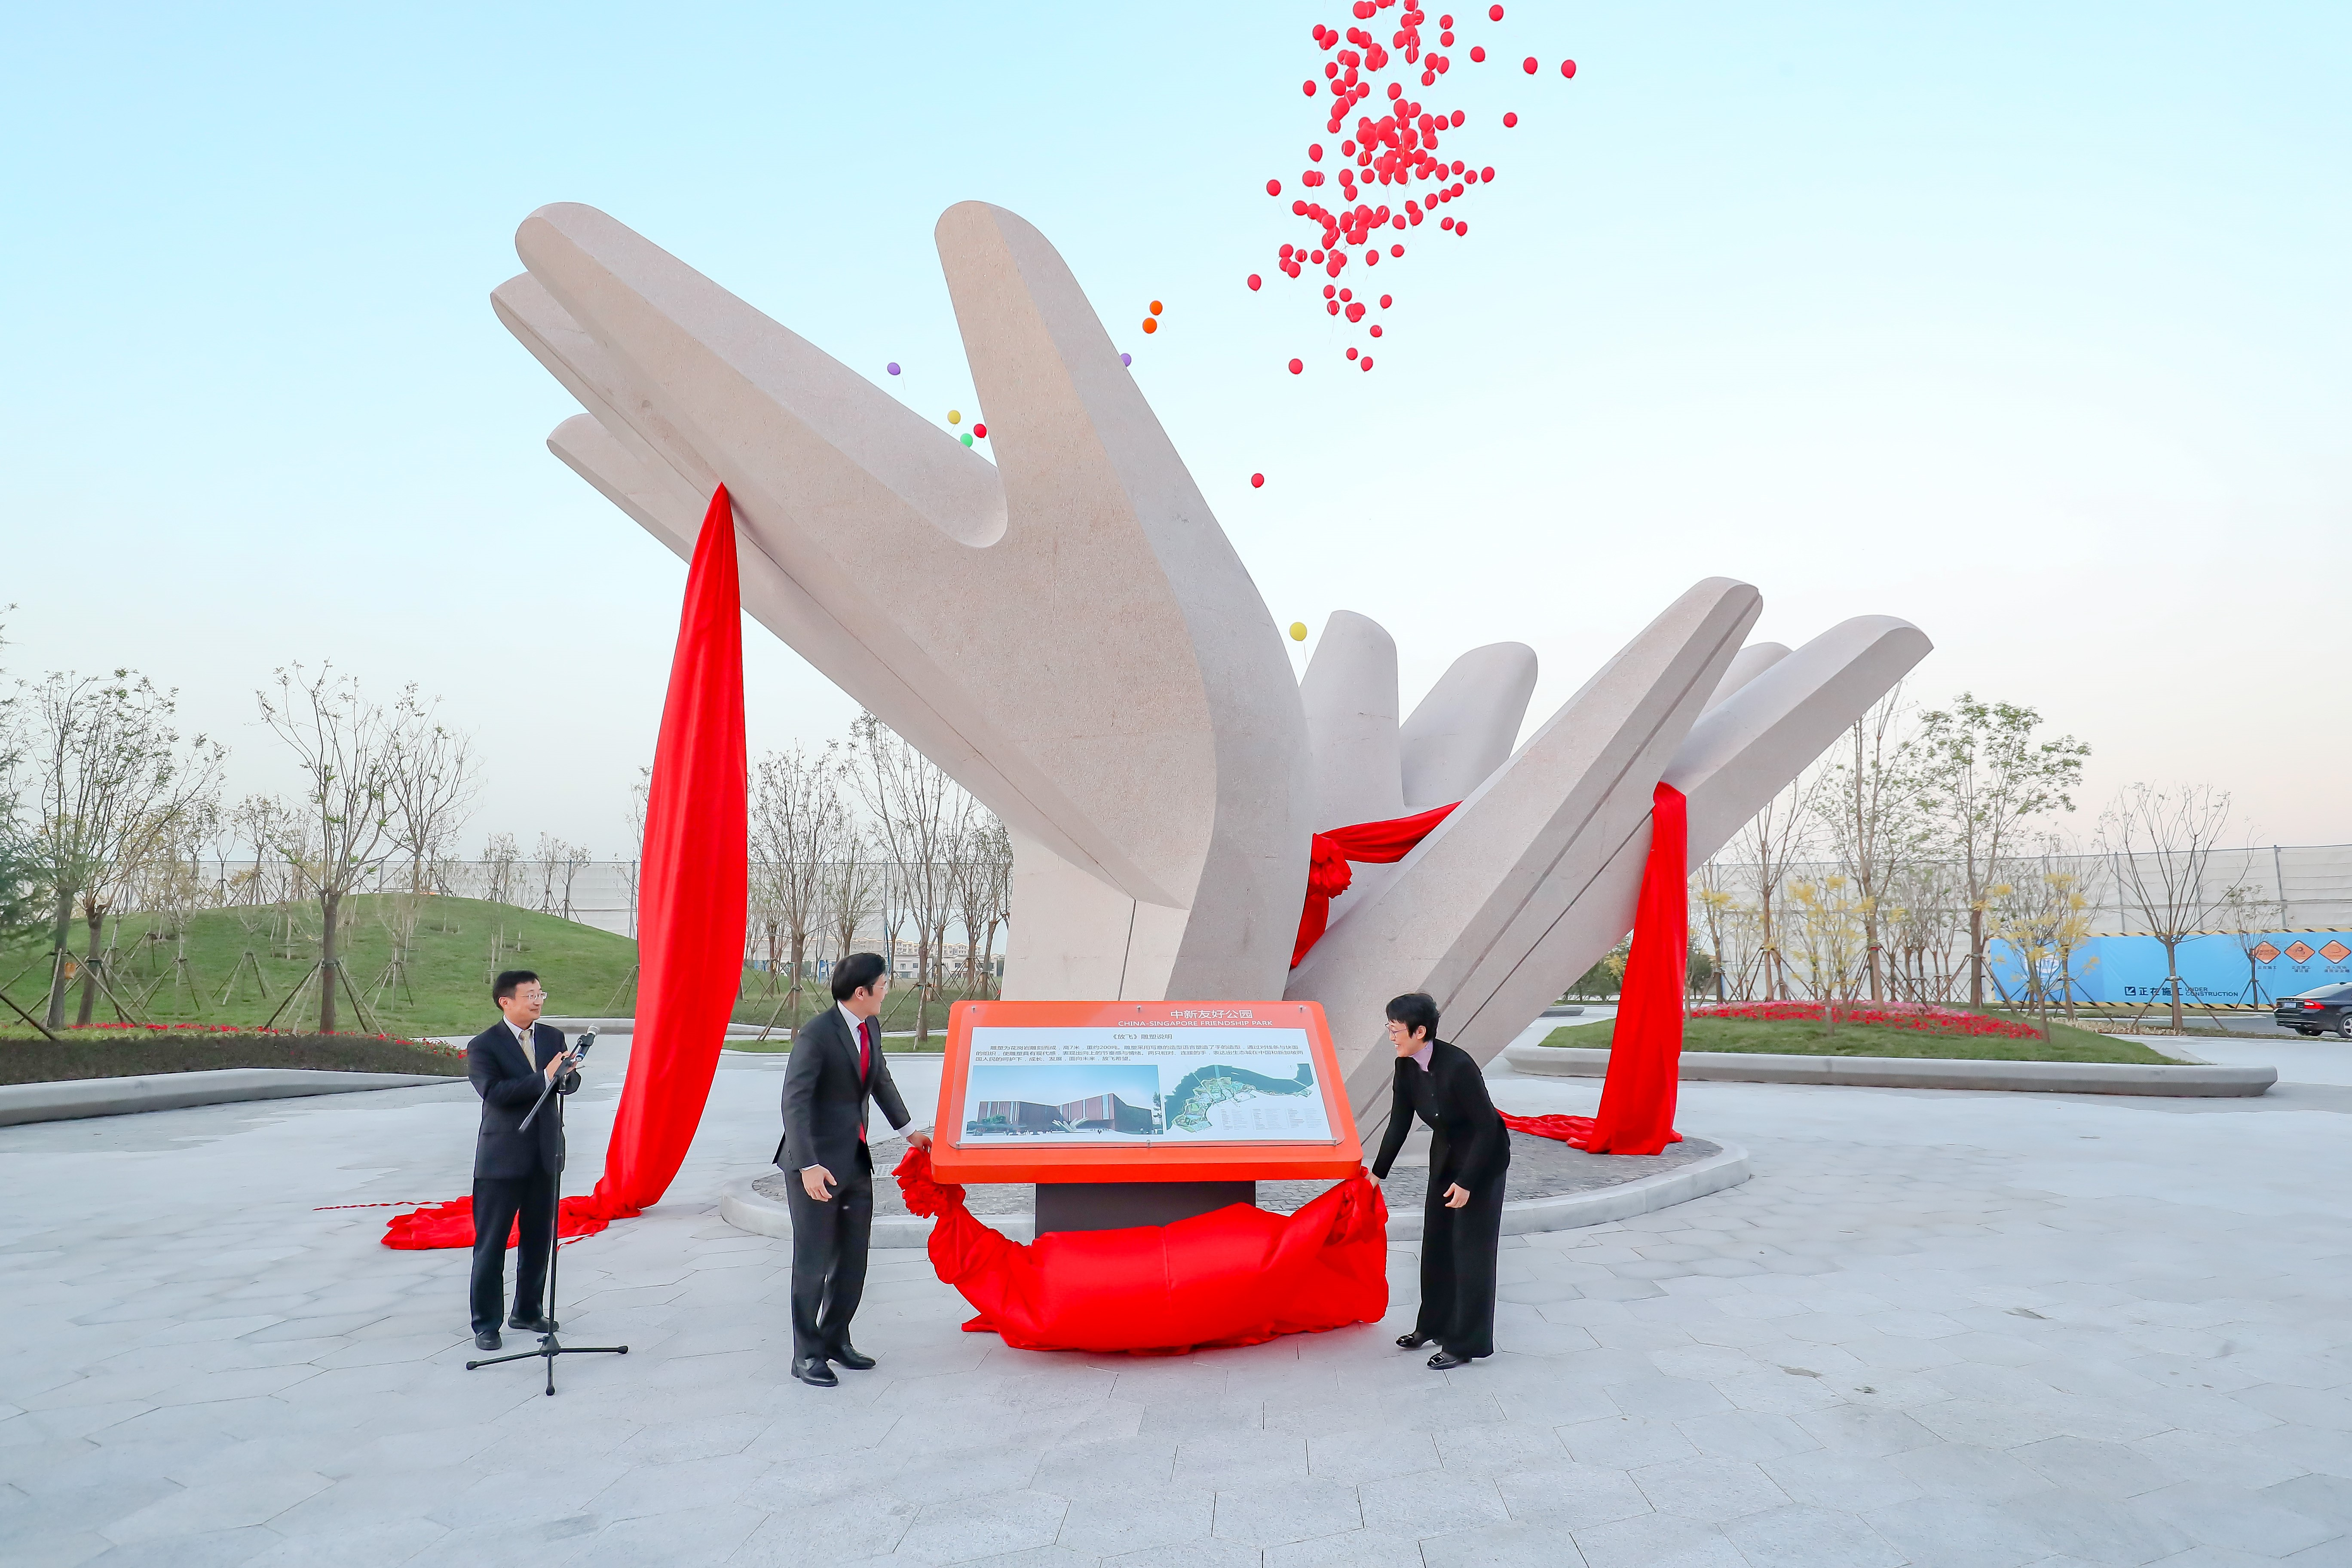 Sculpture unveiling at Sino-Singapore Tianjin Eco-city. (SPH)